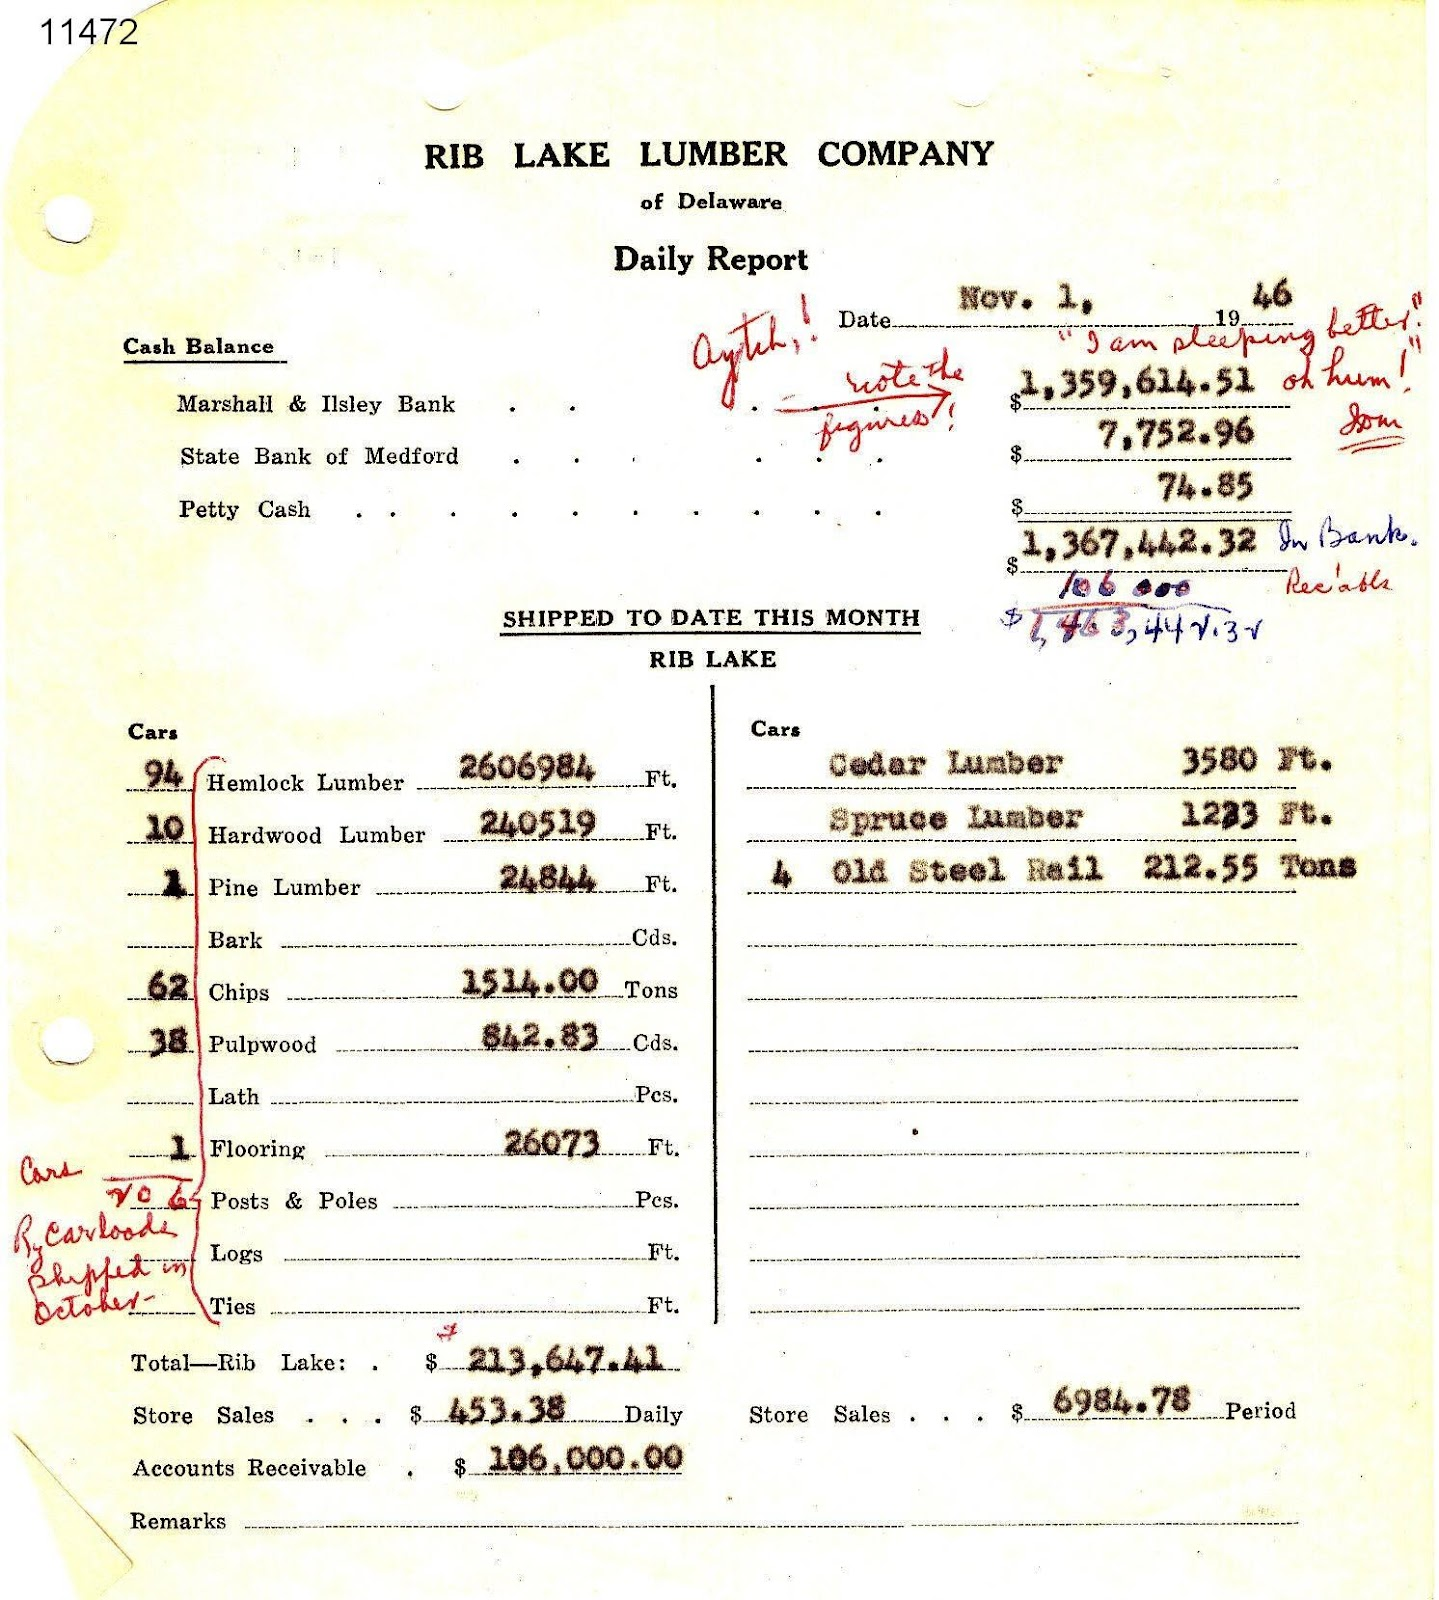 "C:\Users\Robert P. Rusch\Desktop\II. RLHSoc\Documents & Photos-Scanned\Rib Lake History 11400-11499\11472-RLLC 11-1-1946 ""Daily Report"" $1,359,614.51 in bank ""I am sleeping better""-says John D. Myl.jpg"